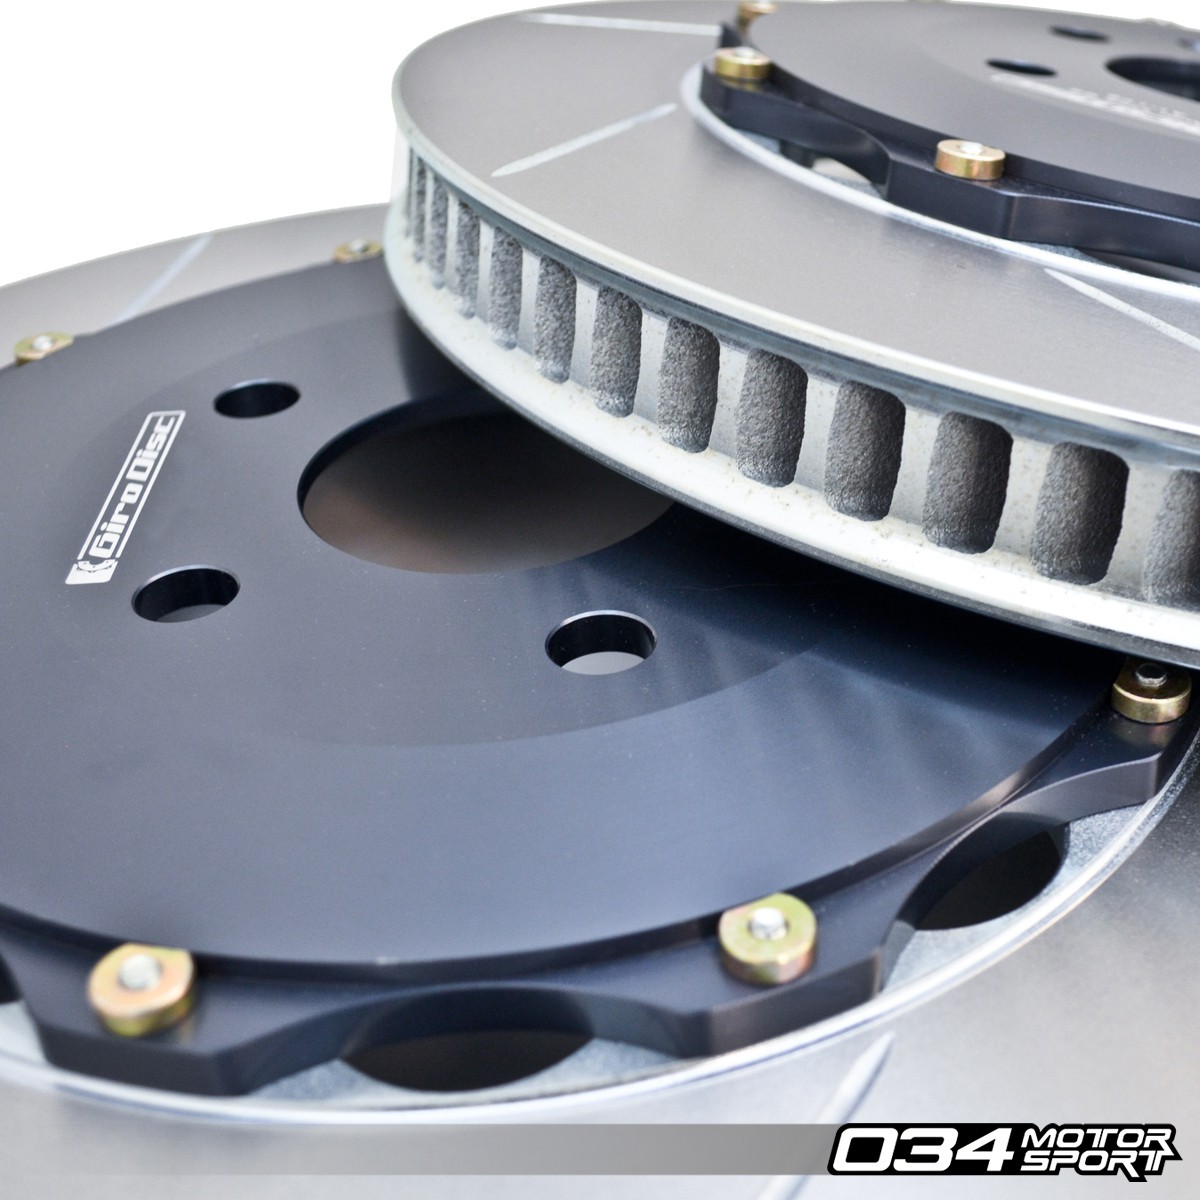 GiroDisc Front 2-Piece Floating Rotor Pair for B7 Audi RS4 | GIR-A1-100